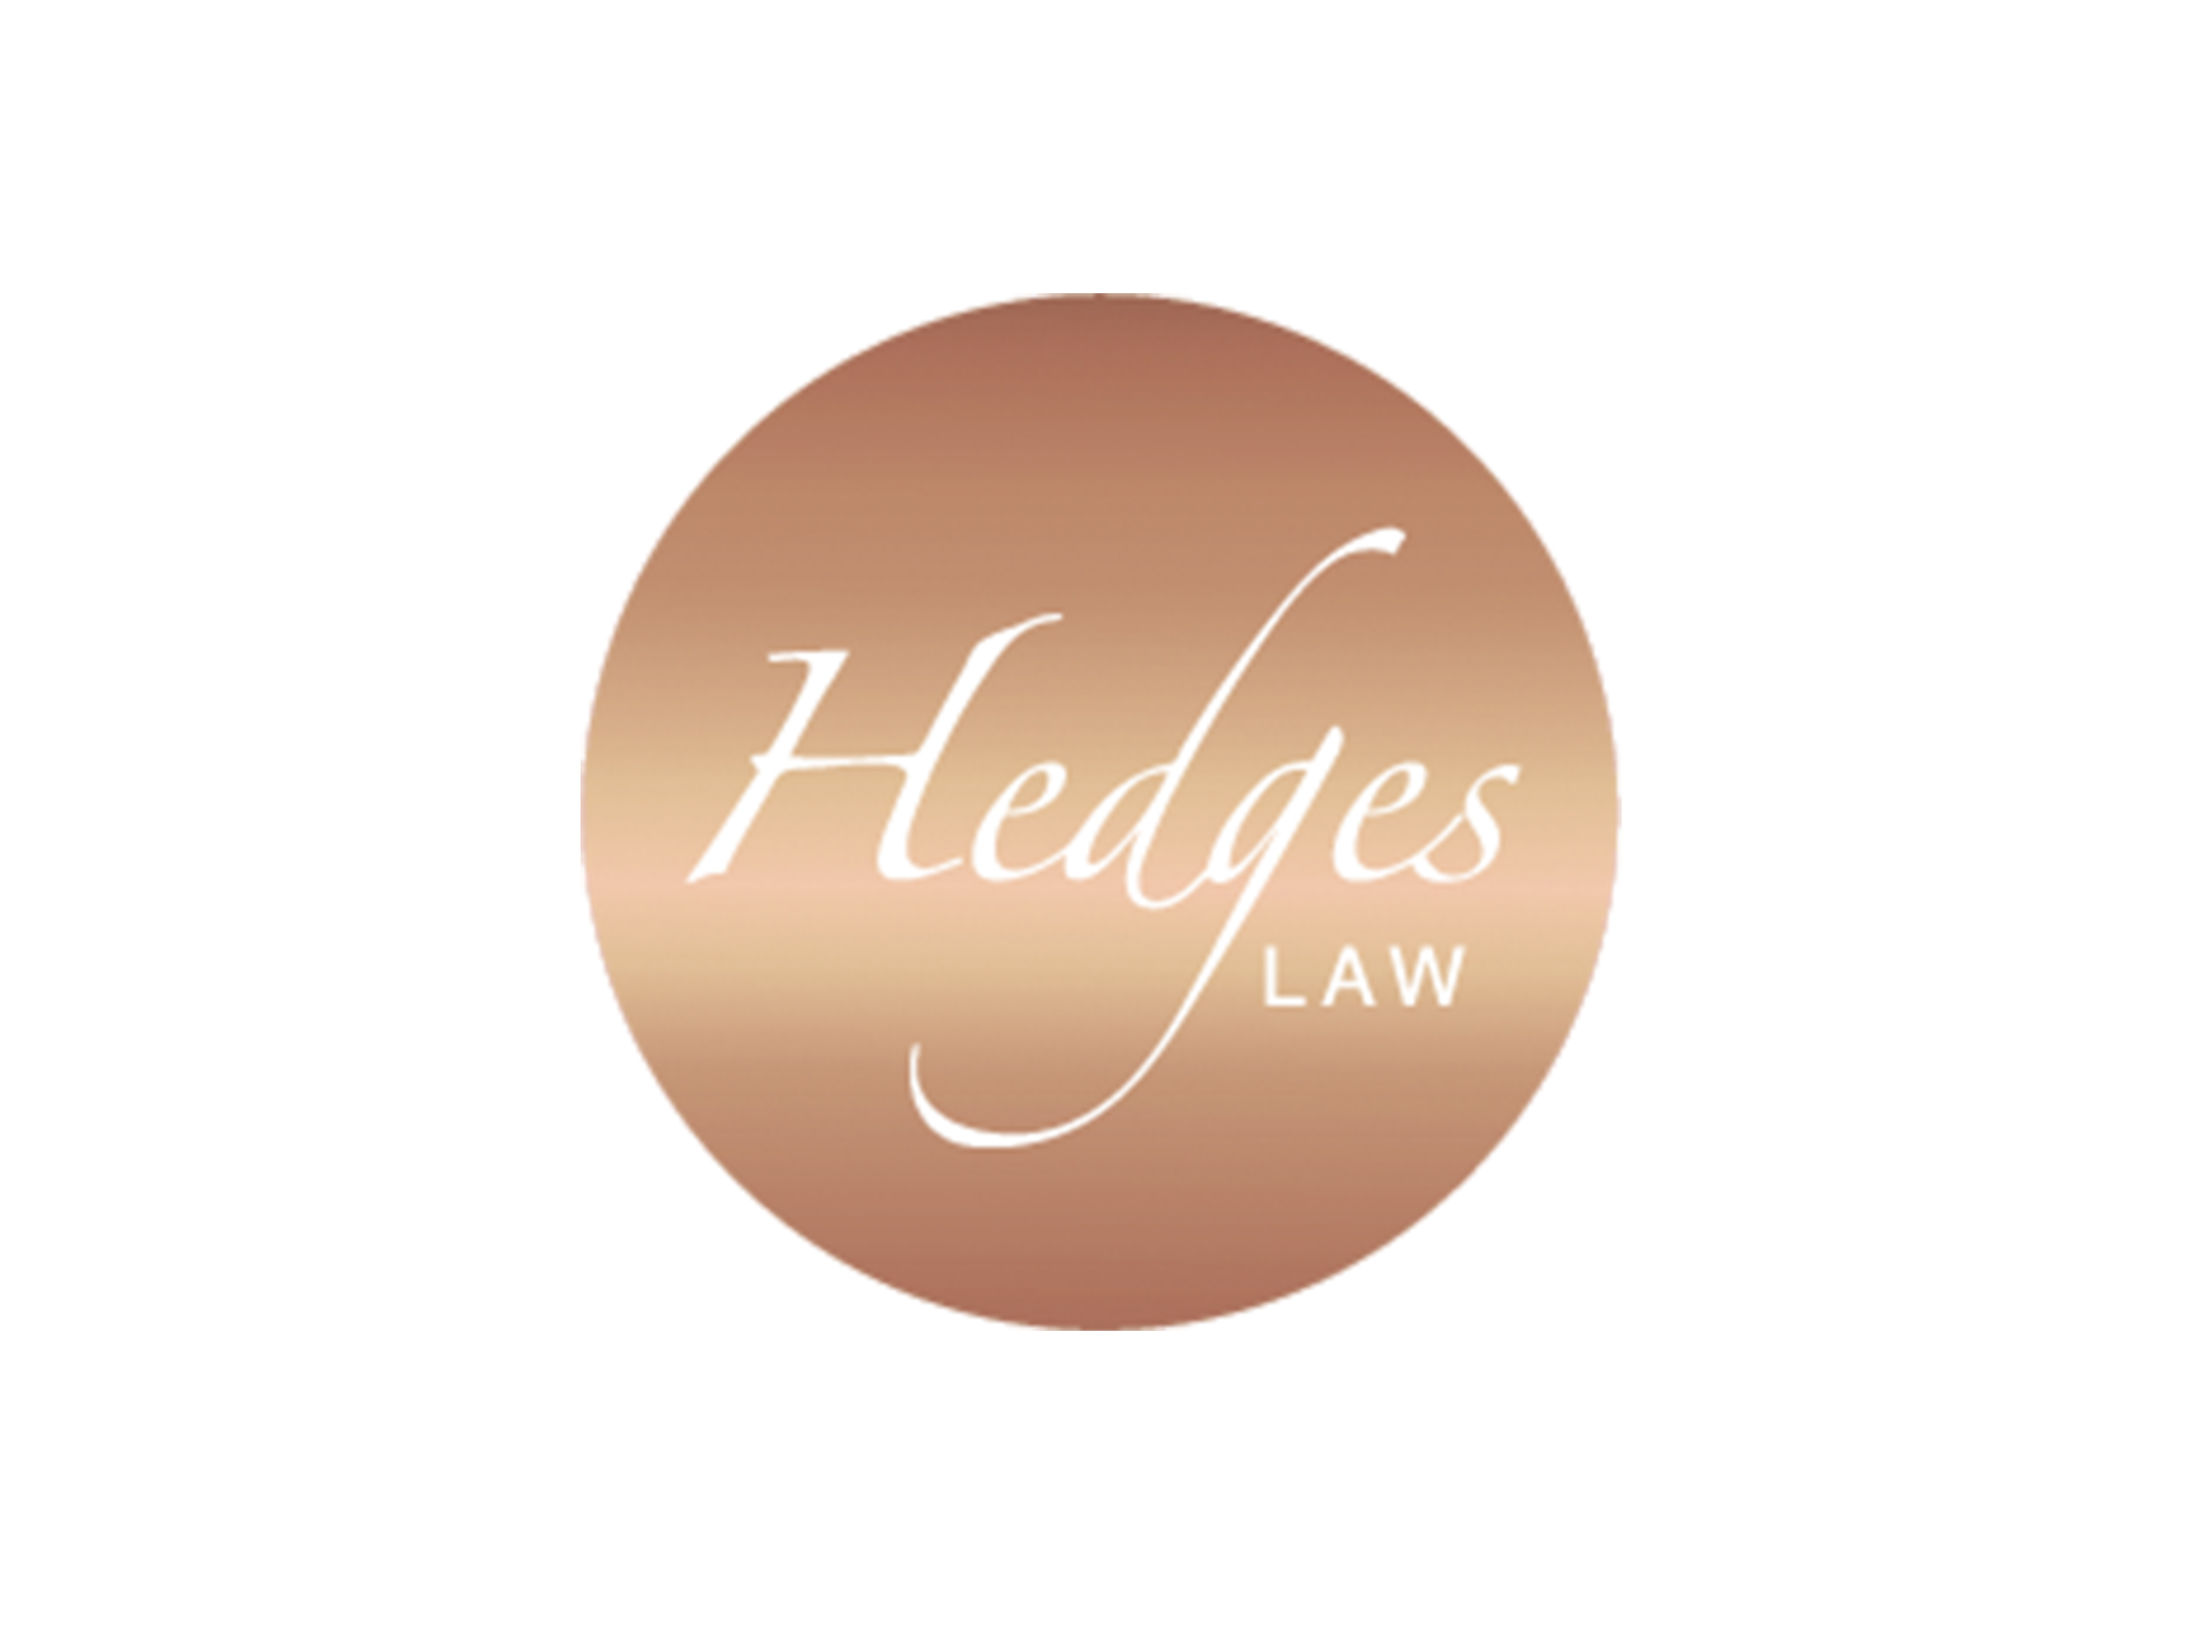 Hedges Law Team Building Review